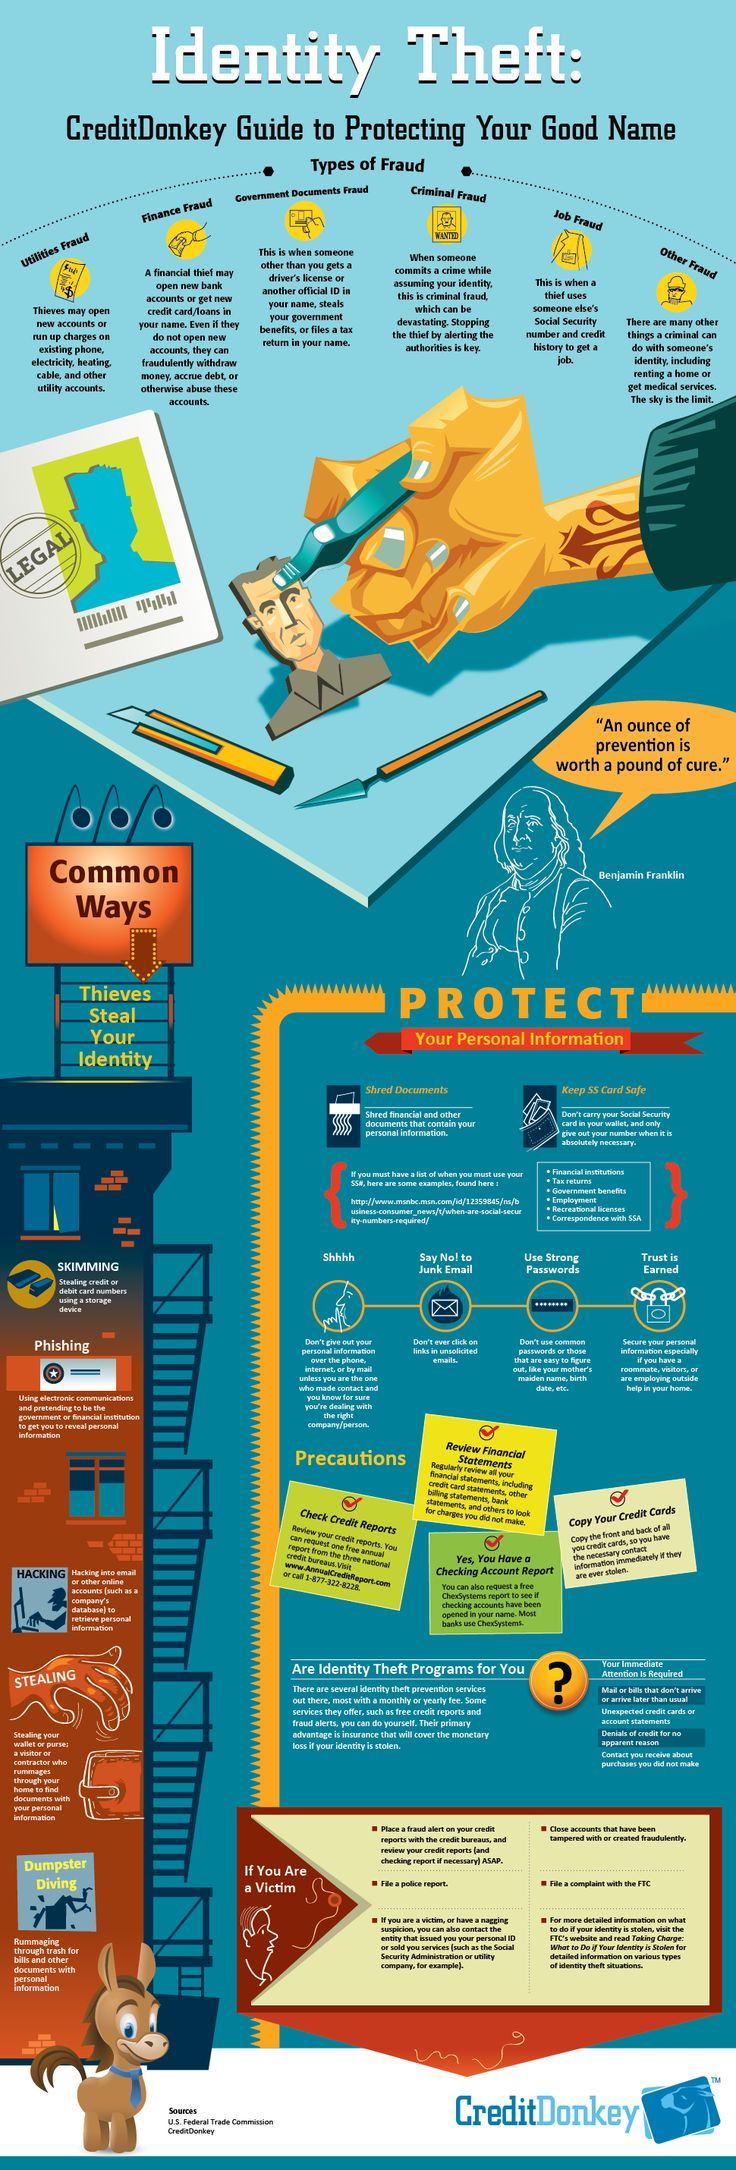 Learn how to protect your identity online and off. avast! Internet Security with SafeZone keeps your personal data and identity safe. http://www.avast.com/internet-security  #Infographic